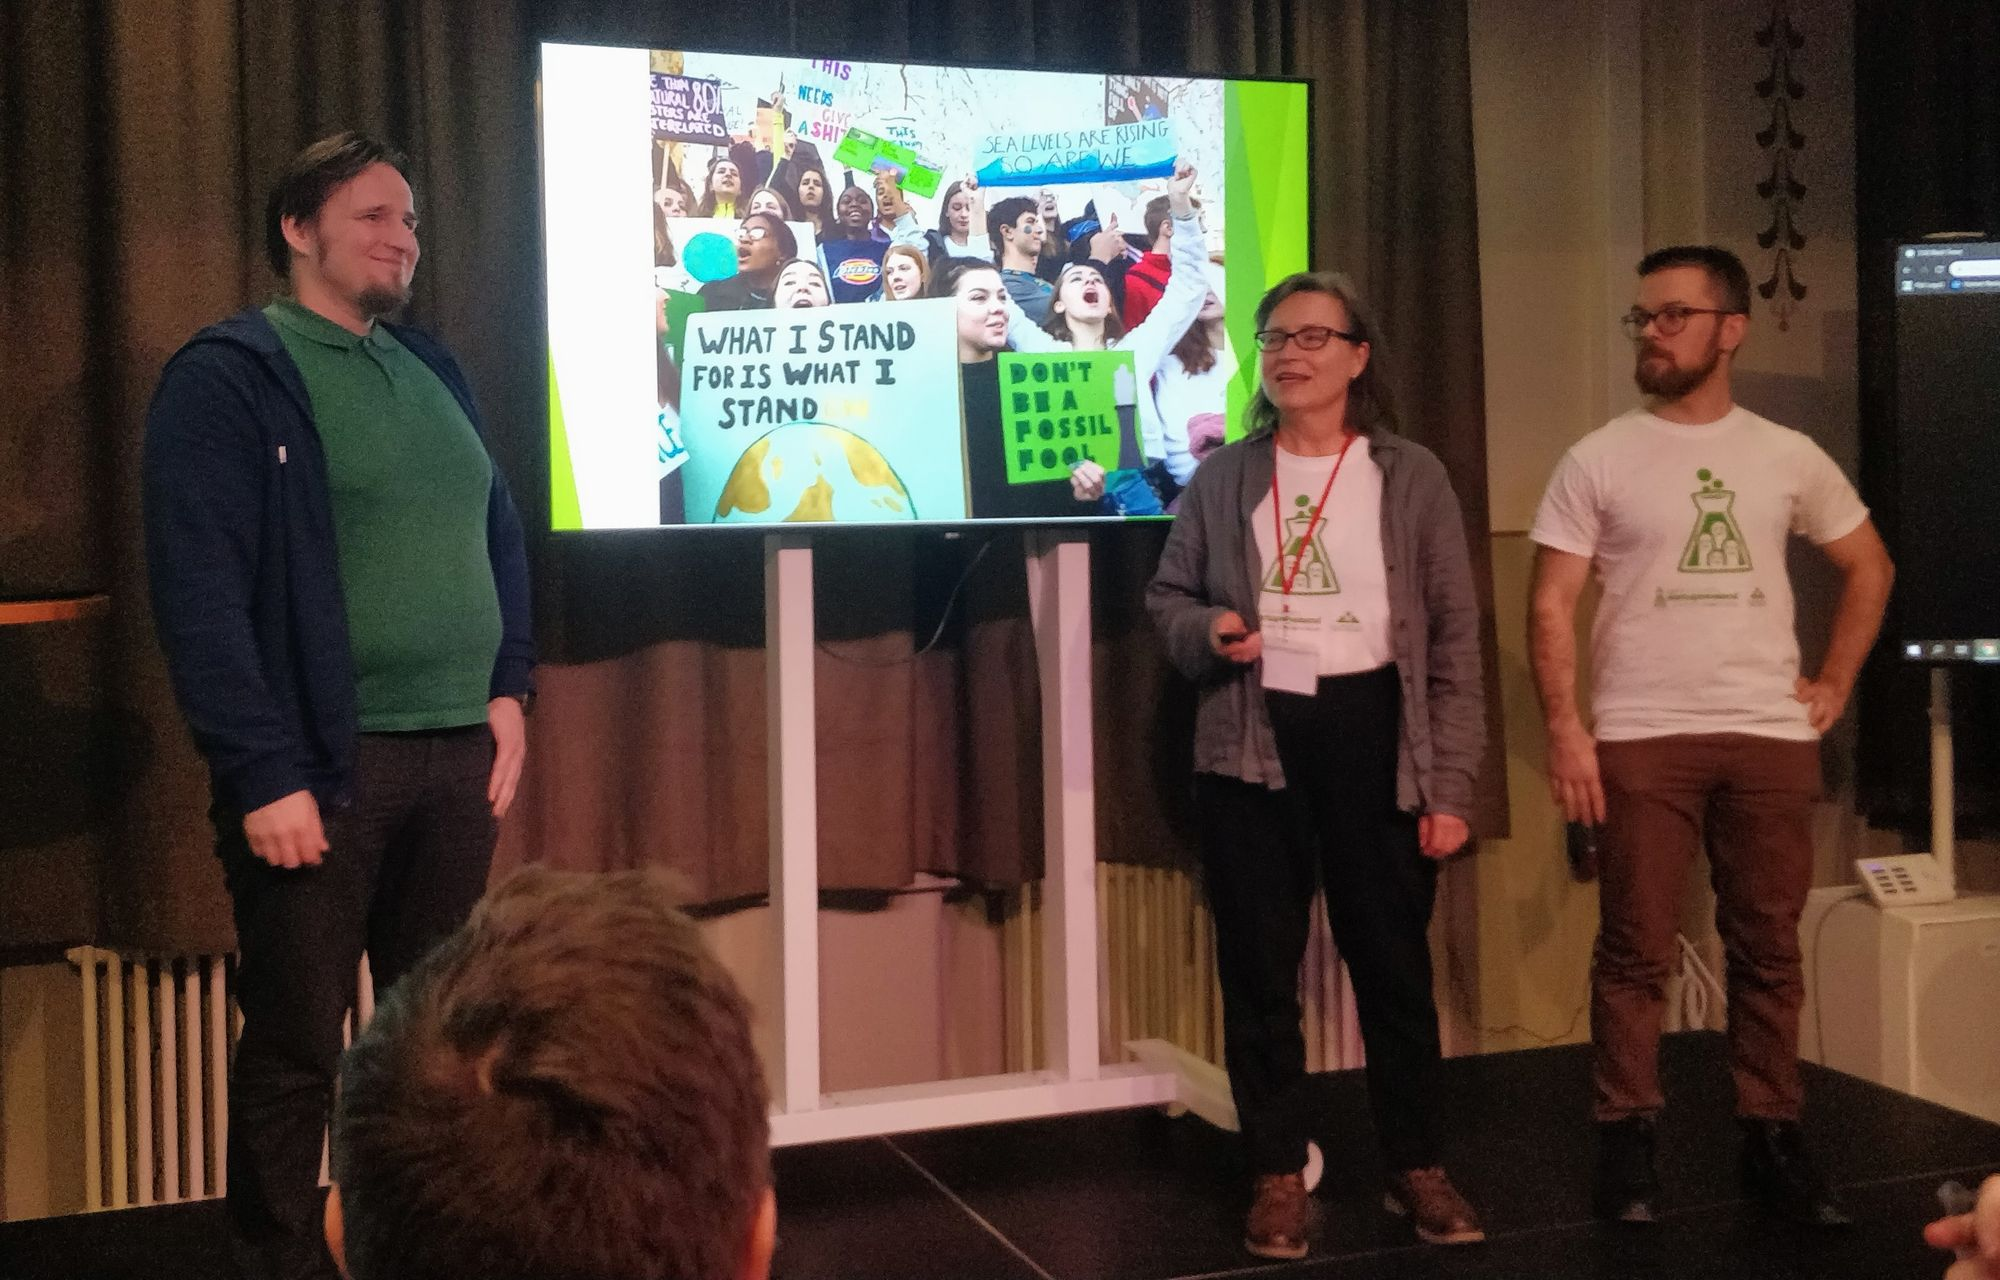 Photo: Out of the blue team pitching (my colleagues Tero and Ari-Pekka on stage)